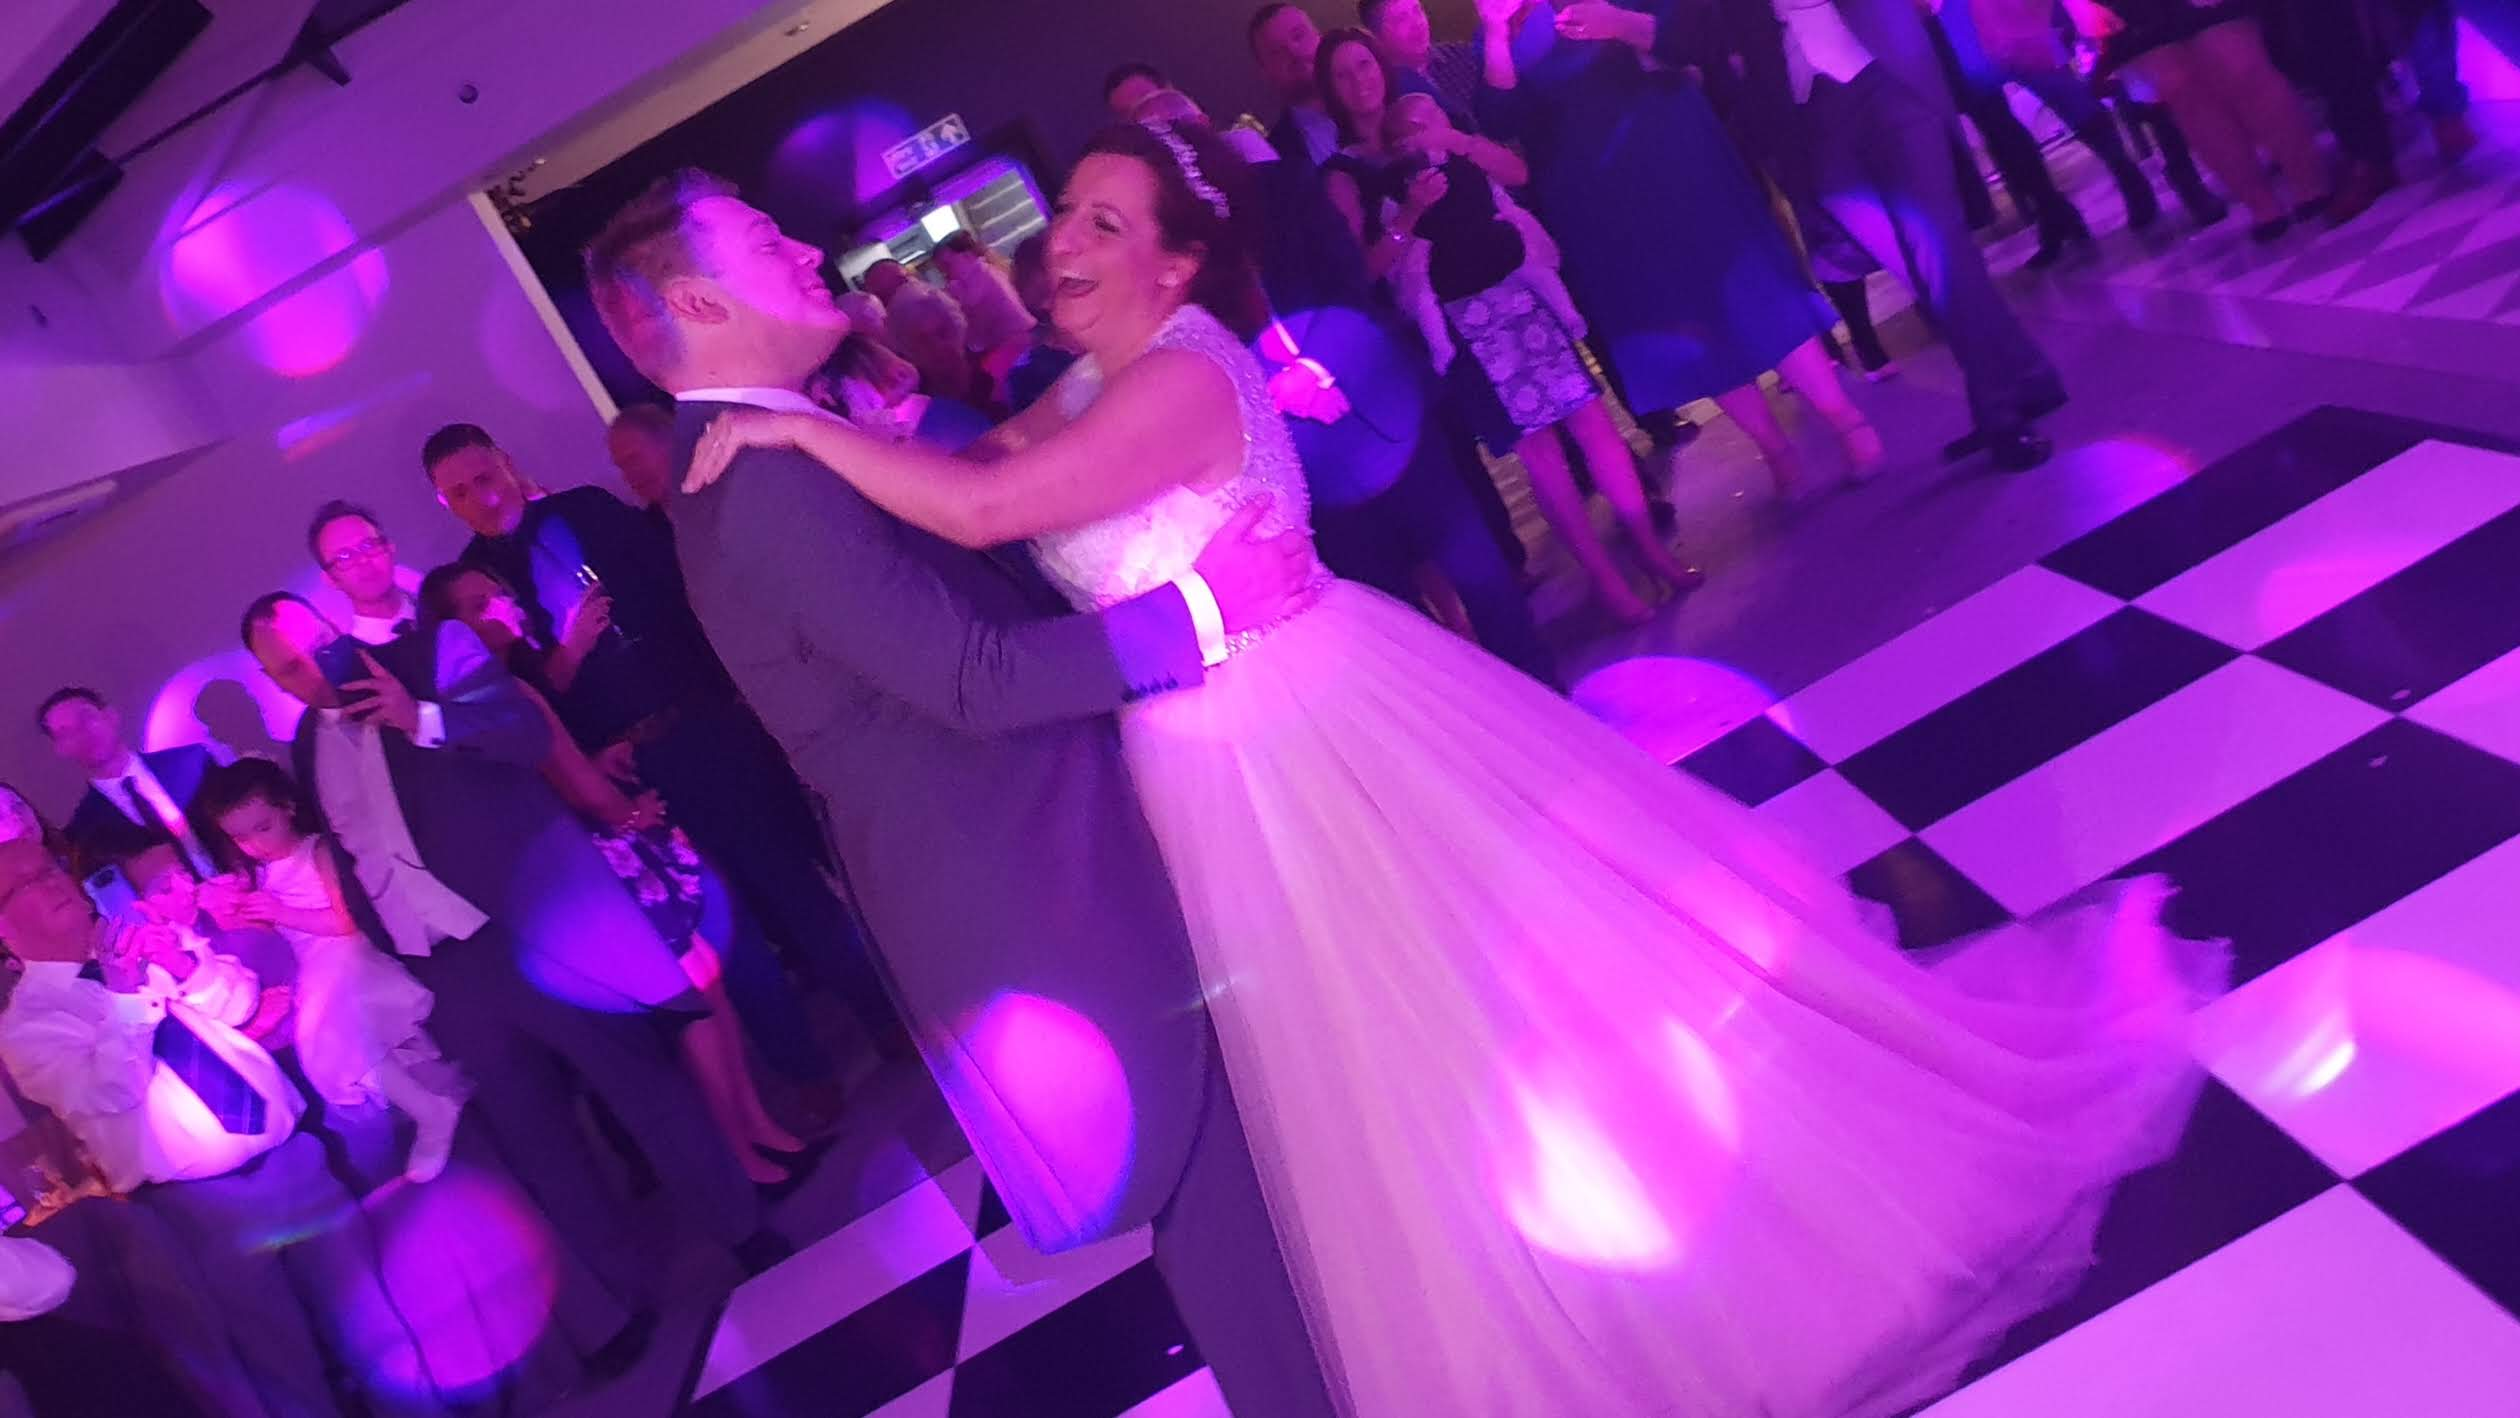 Bride & Groom have their first dance at Swynford Manor wedding venue in Cambridgeshire.